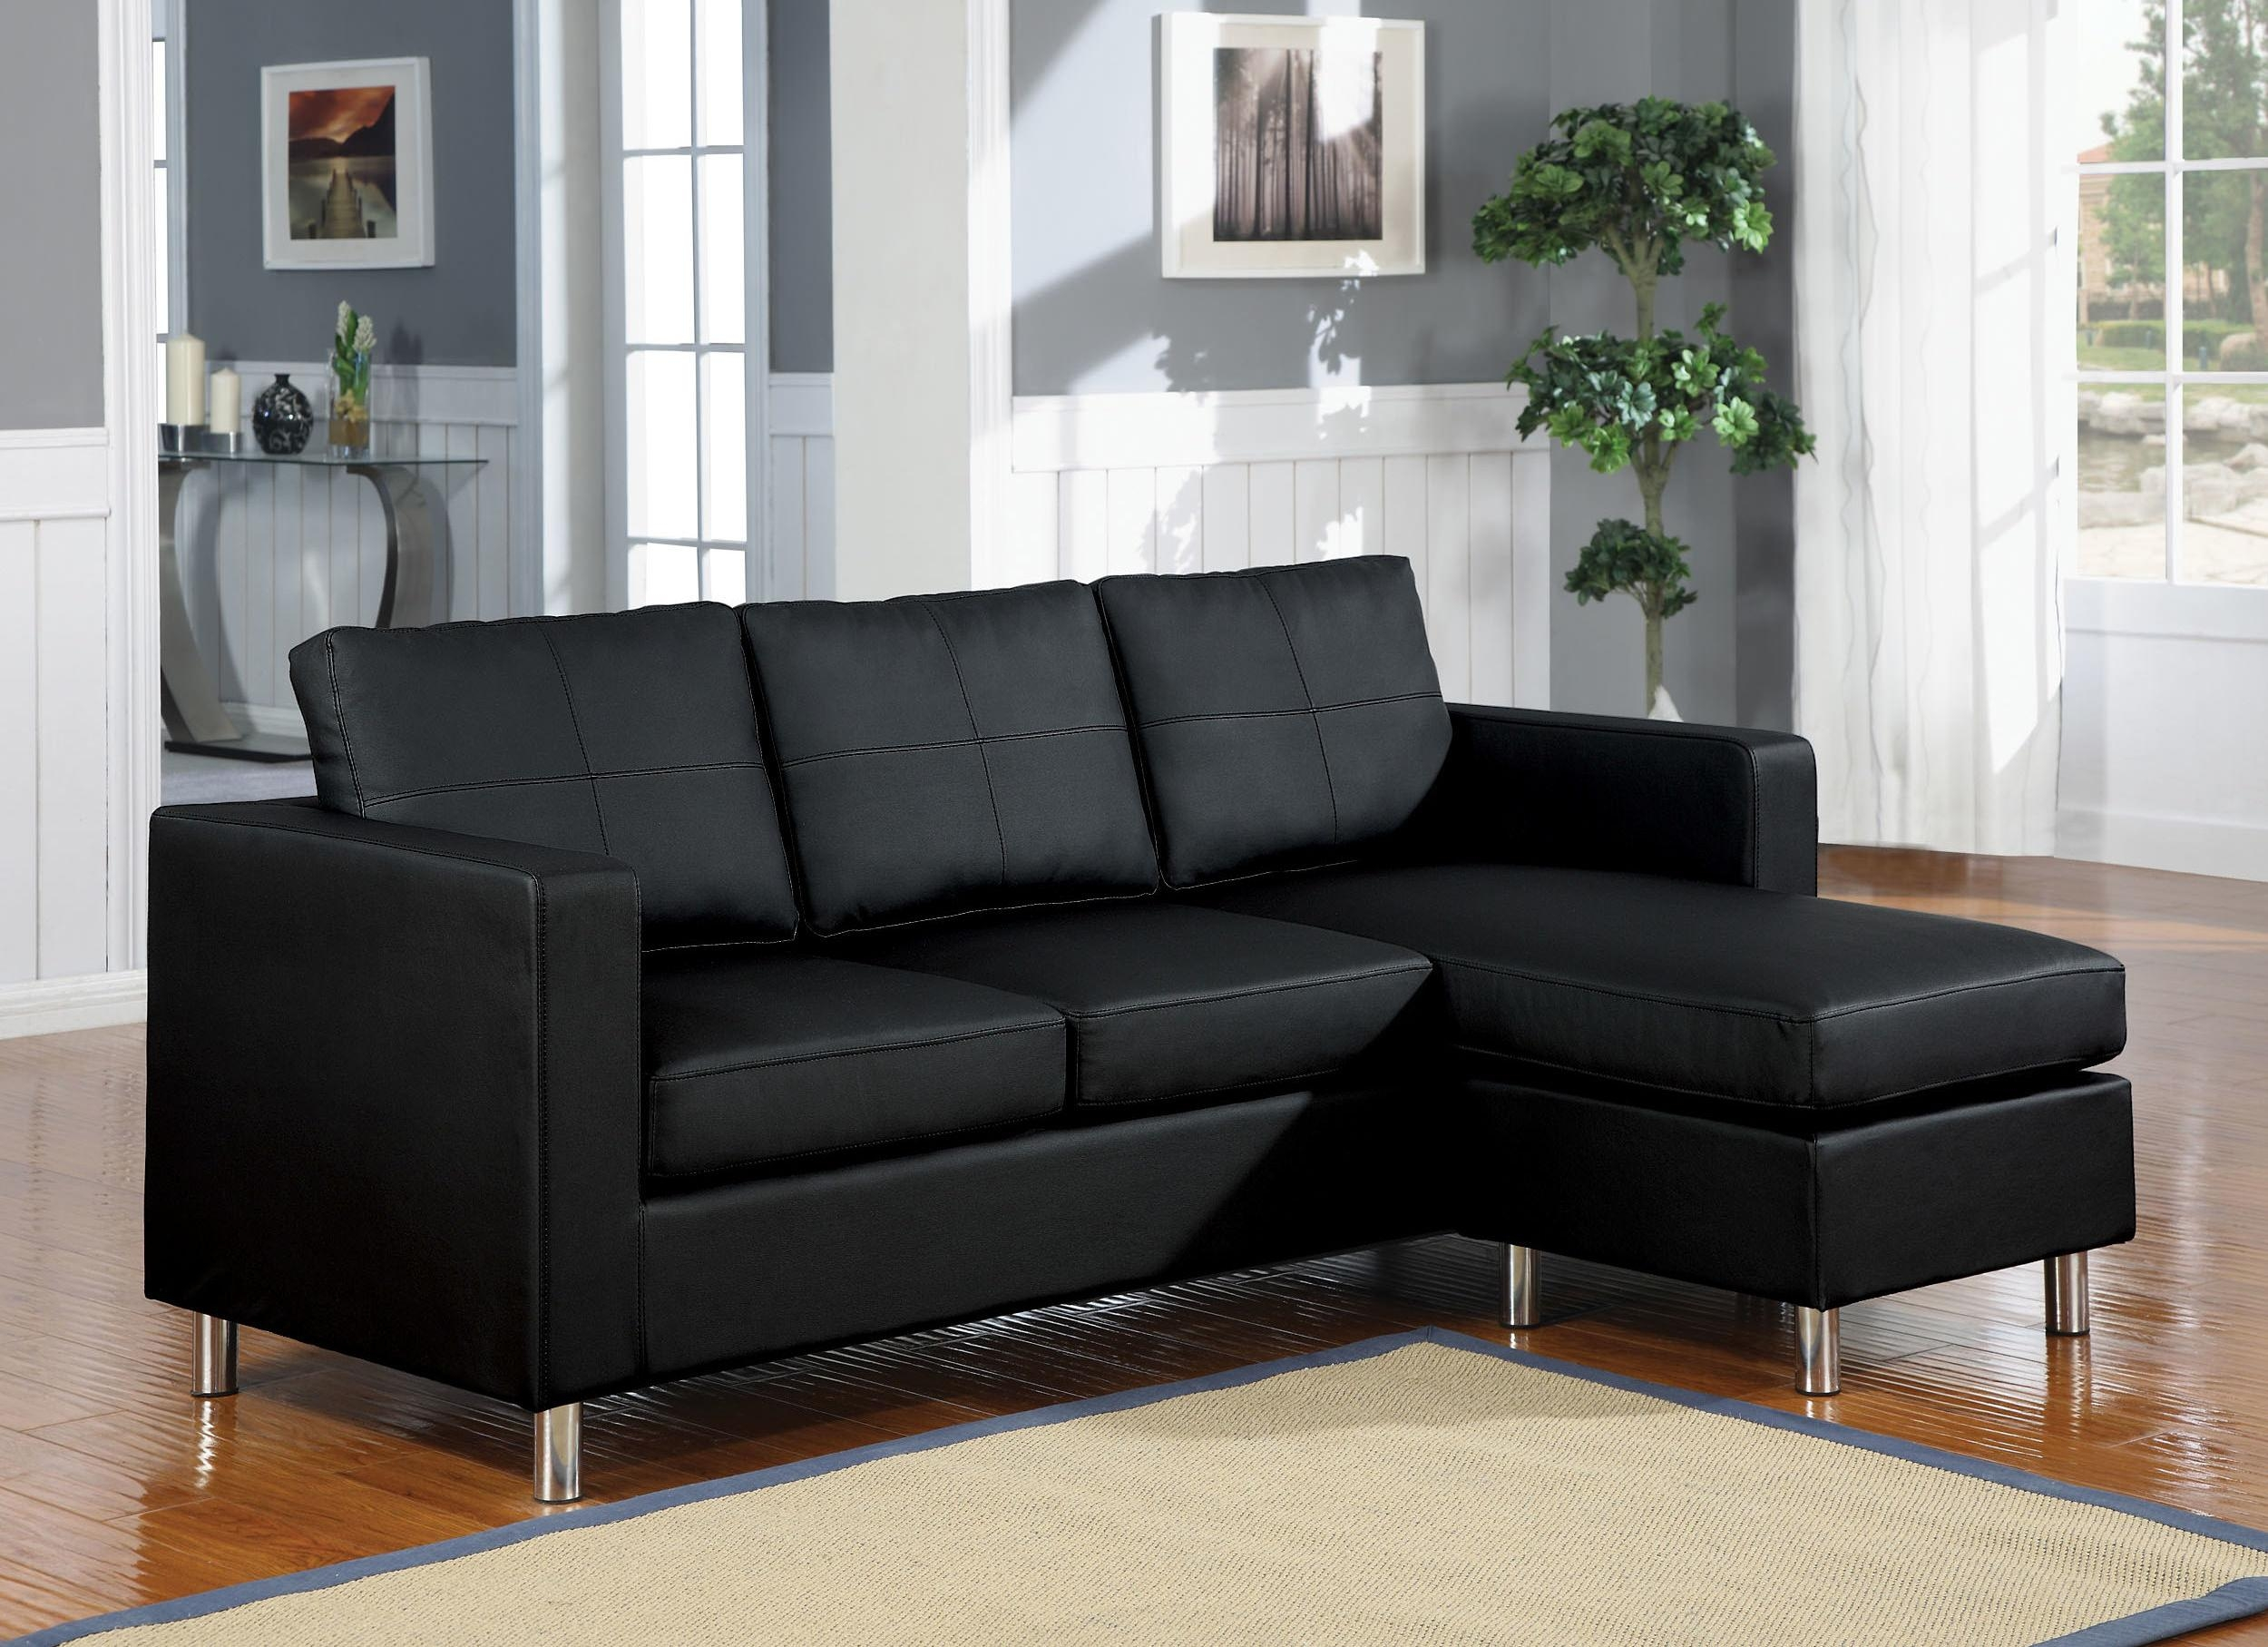 Furniture & Sofa: Perfect Small Spaces Configurable Sectional Sofa Within Sectional Small Space (Image 10 of 20)